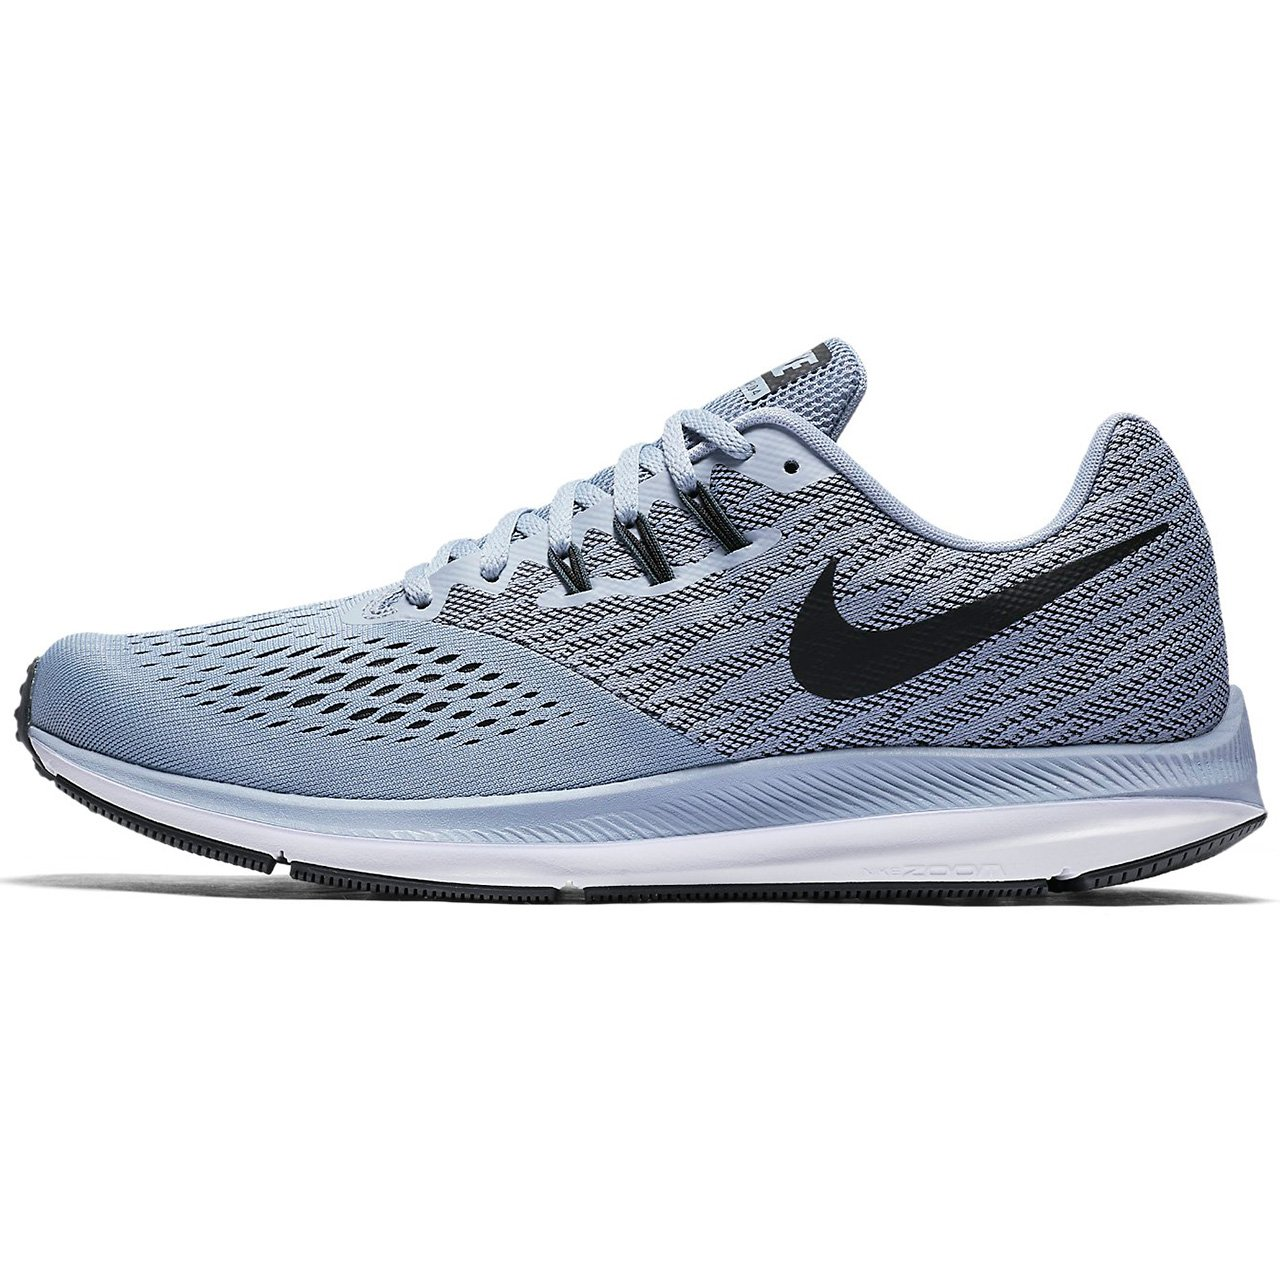 1ab51701d5d86 Galleon - NIKE Mens Zoom Winflo 4